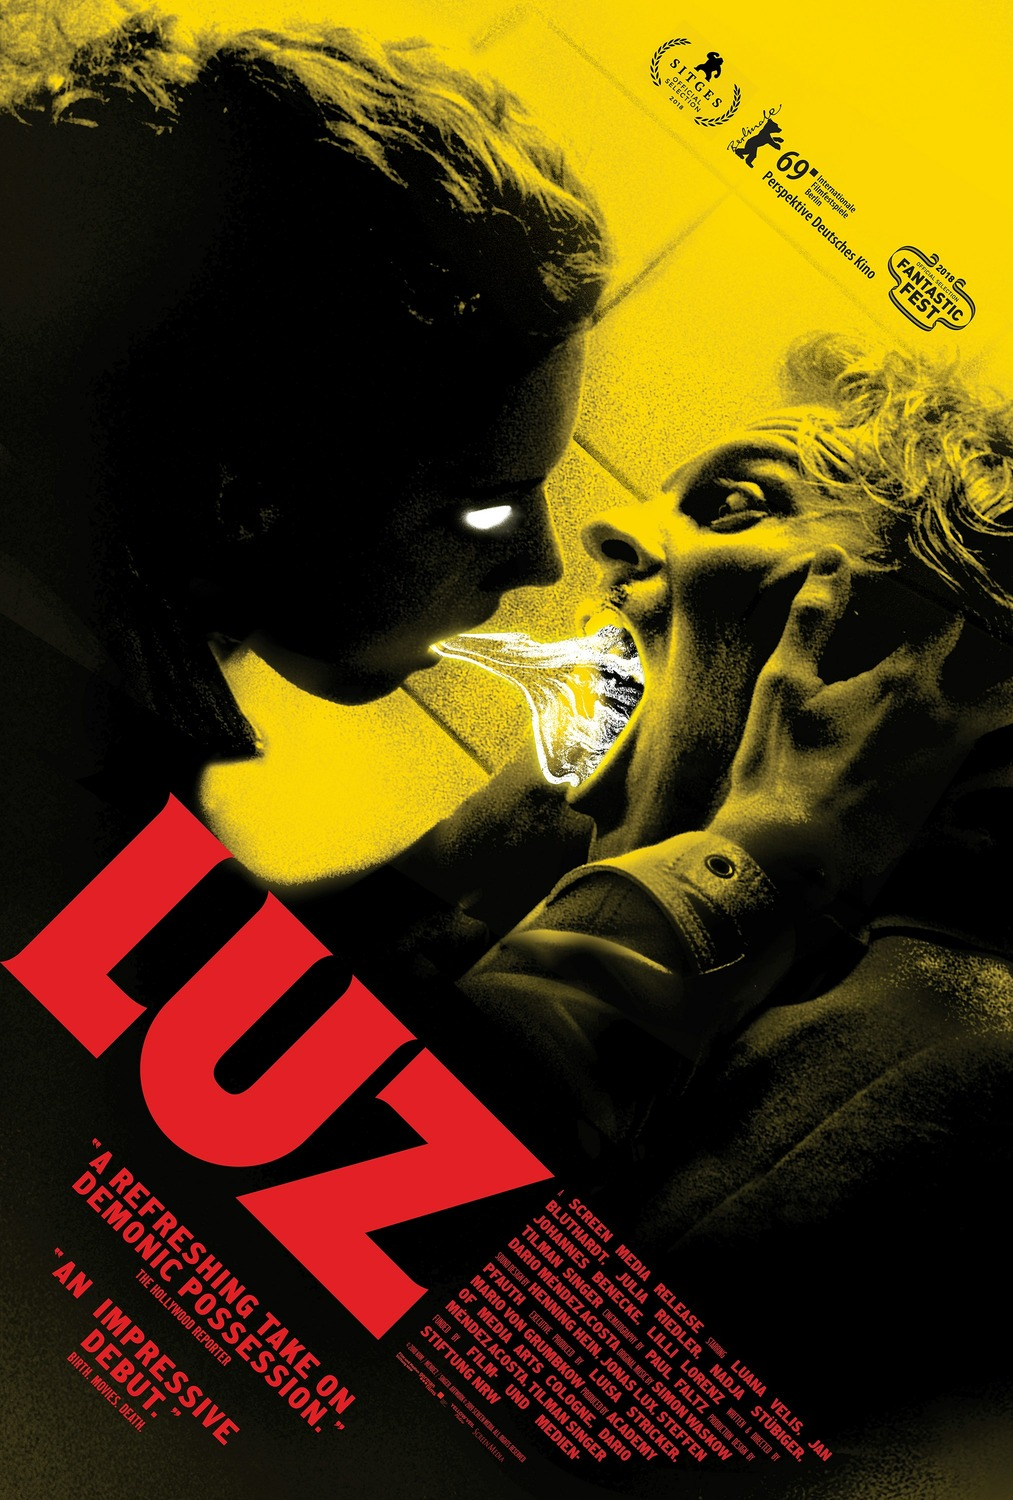 Extra Large Movie Poster Image for Luz (#2 of 2)